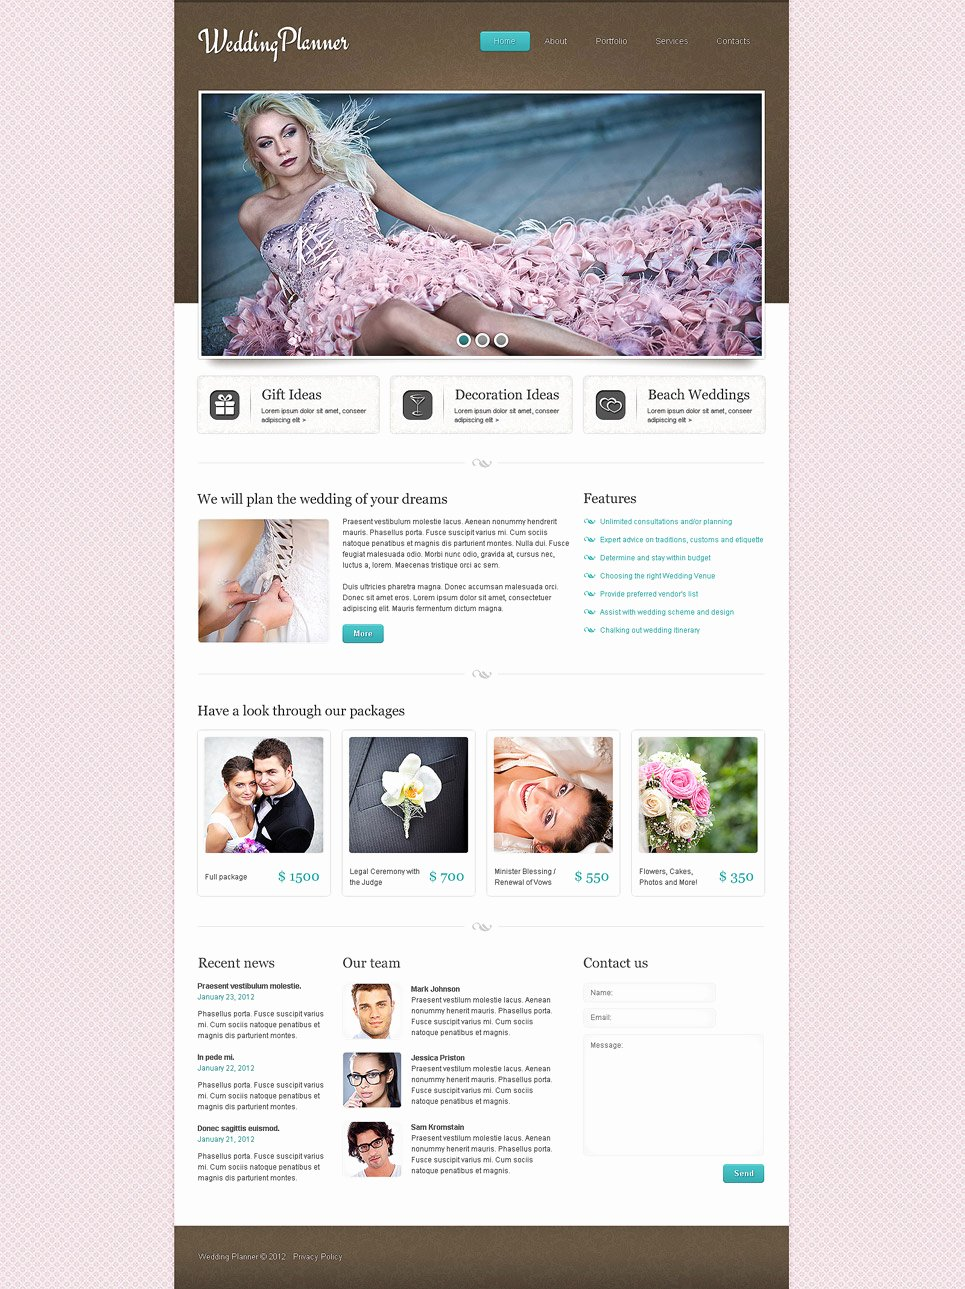 Wedding Planner Website Template Elegant Wedding Planner Responsive Website Template